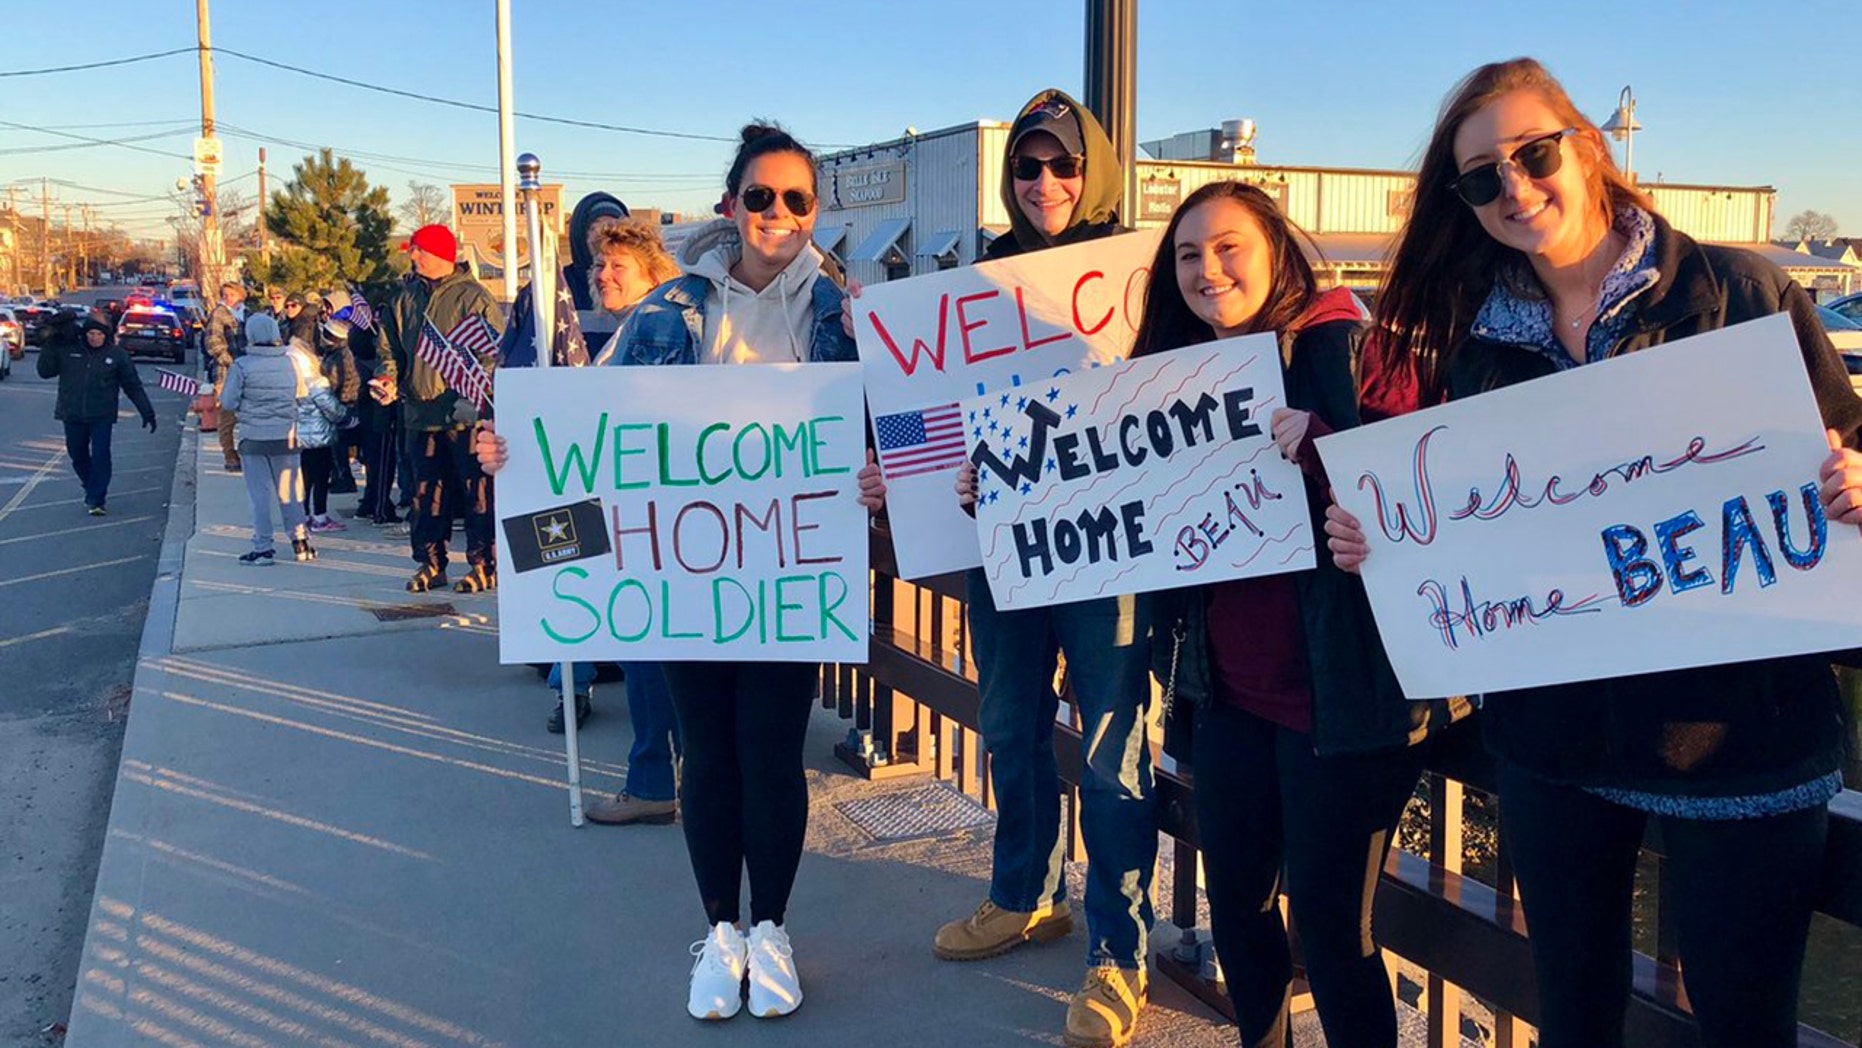 Dozens lined a bridge into Winthrop, Mass., Saturday to surprise U.S. Army soldier Beau Schlichting who returned home from a nine-month deployment in Afghanistan.